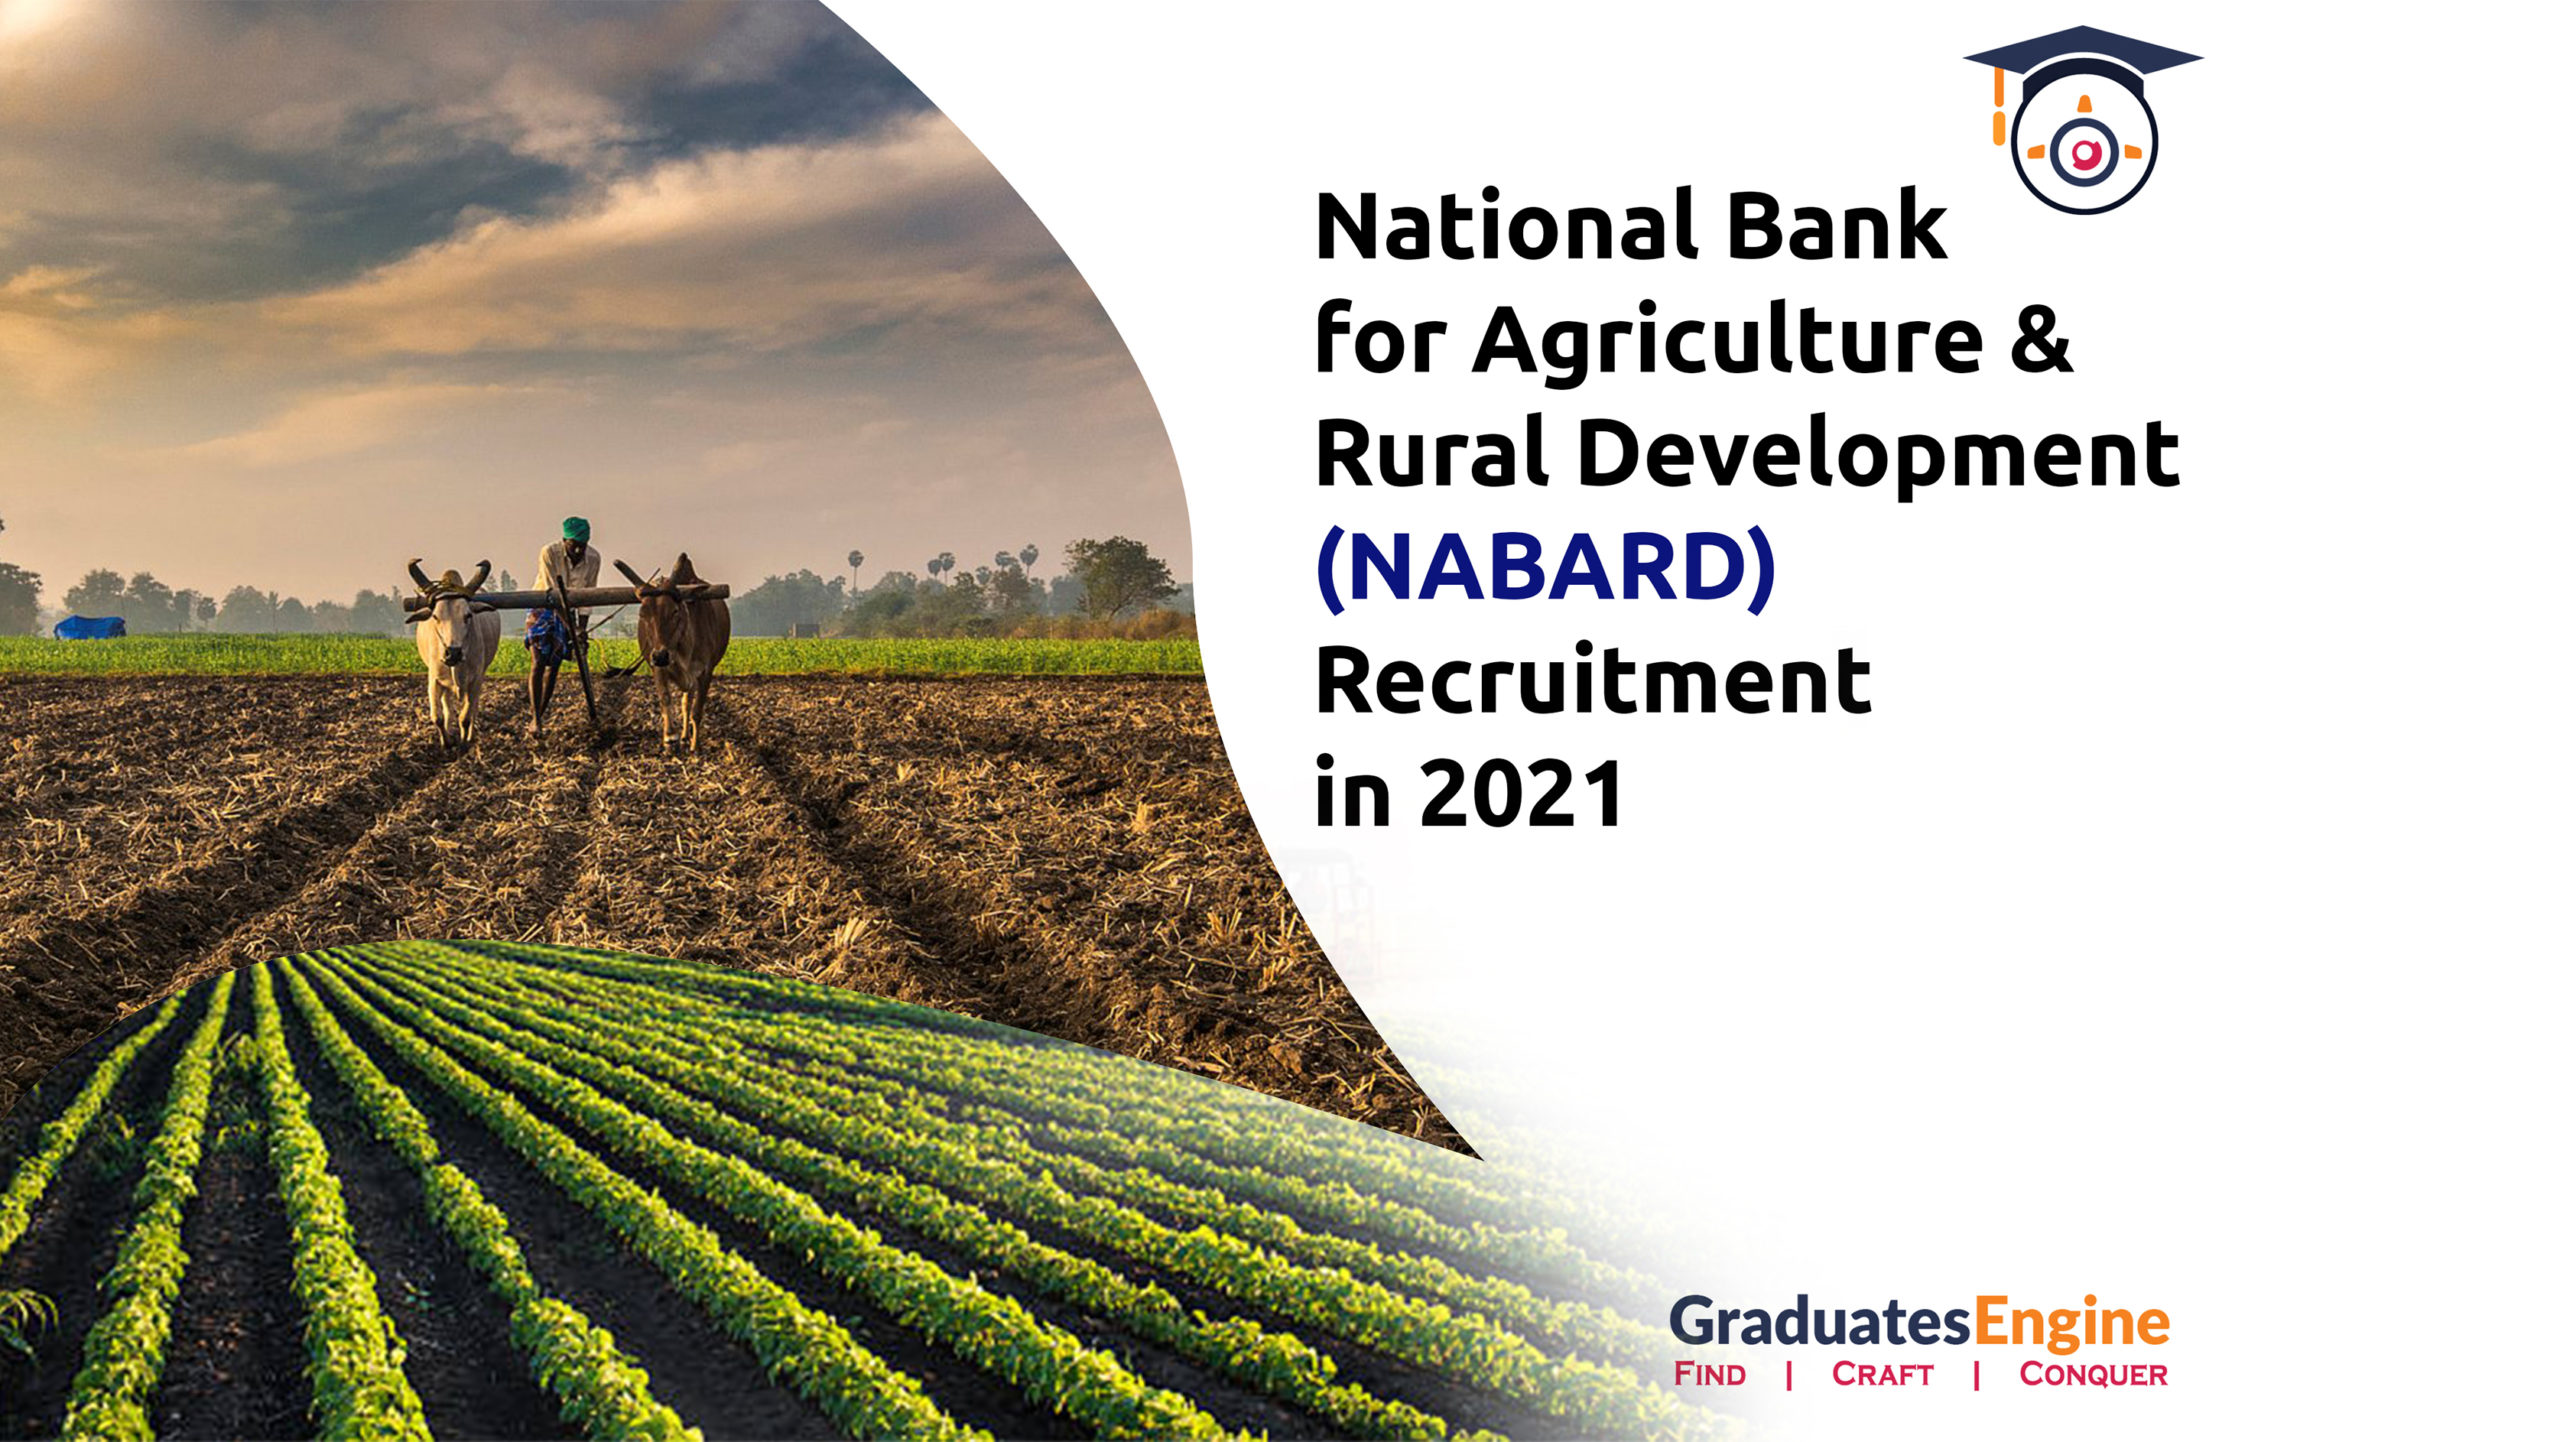 National Bank for Agriculture and Rural Development (NABARD) Recruitment in 2020-21